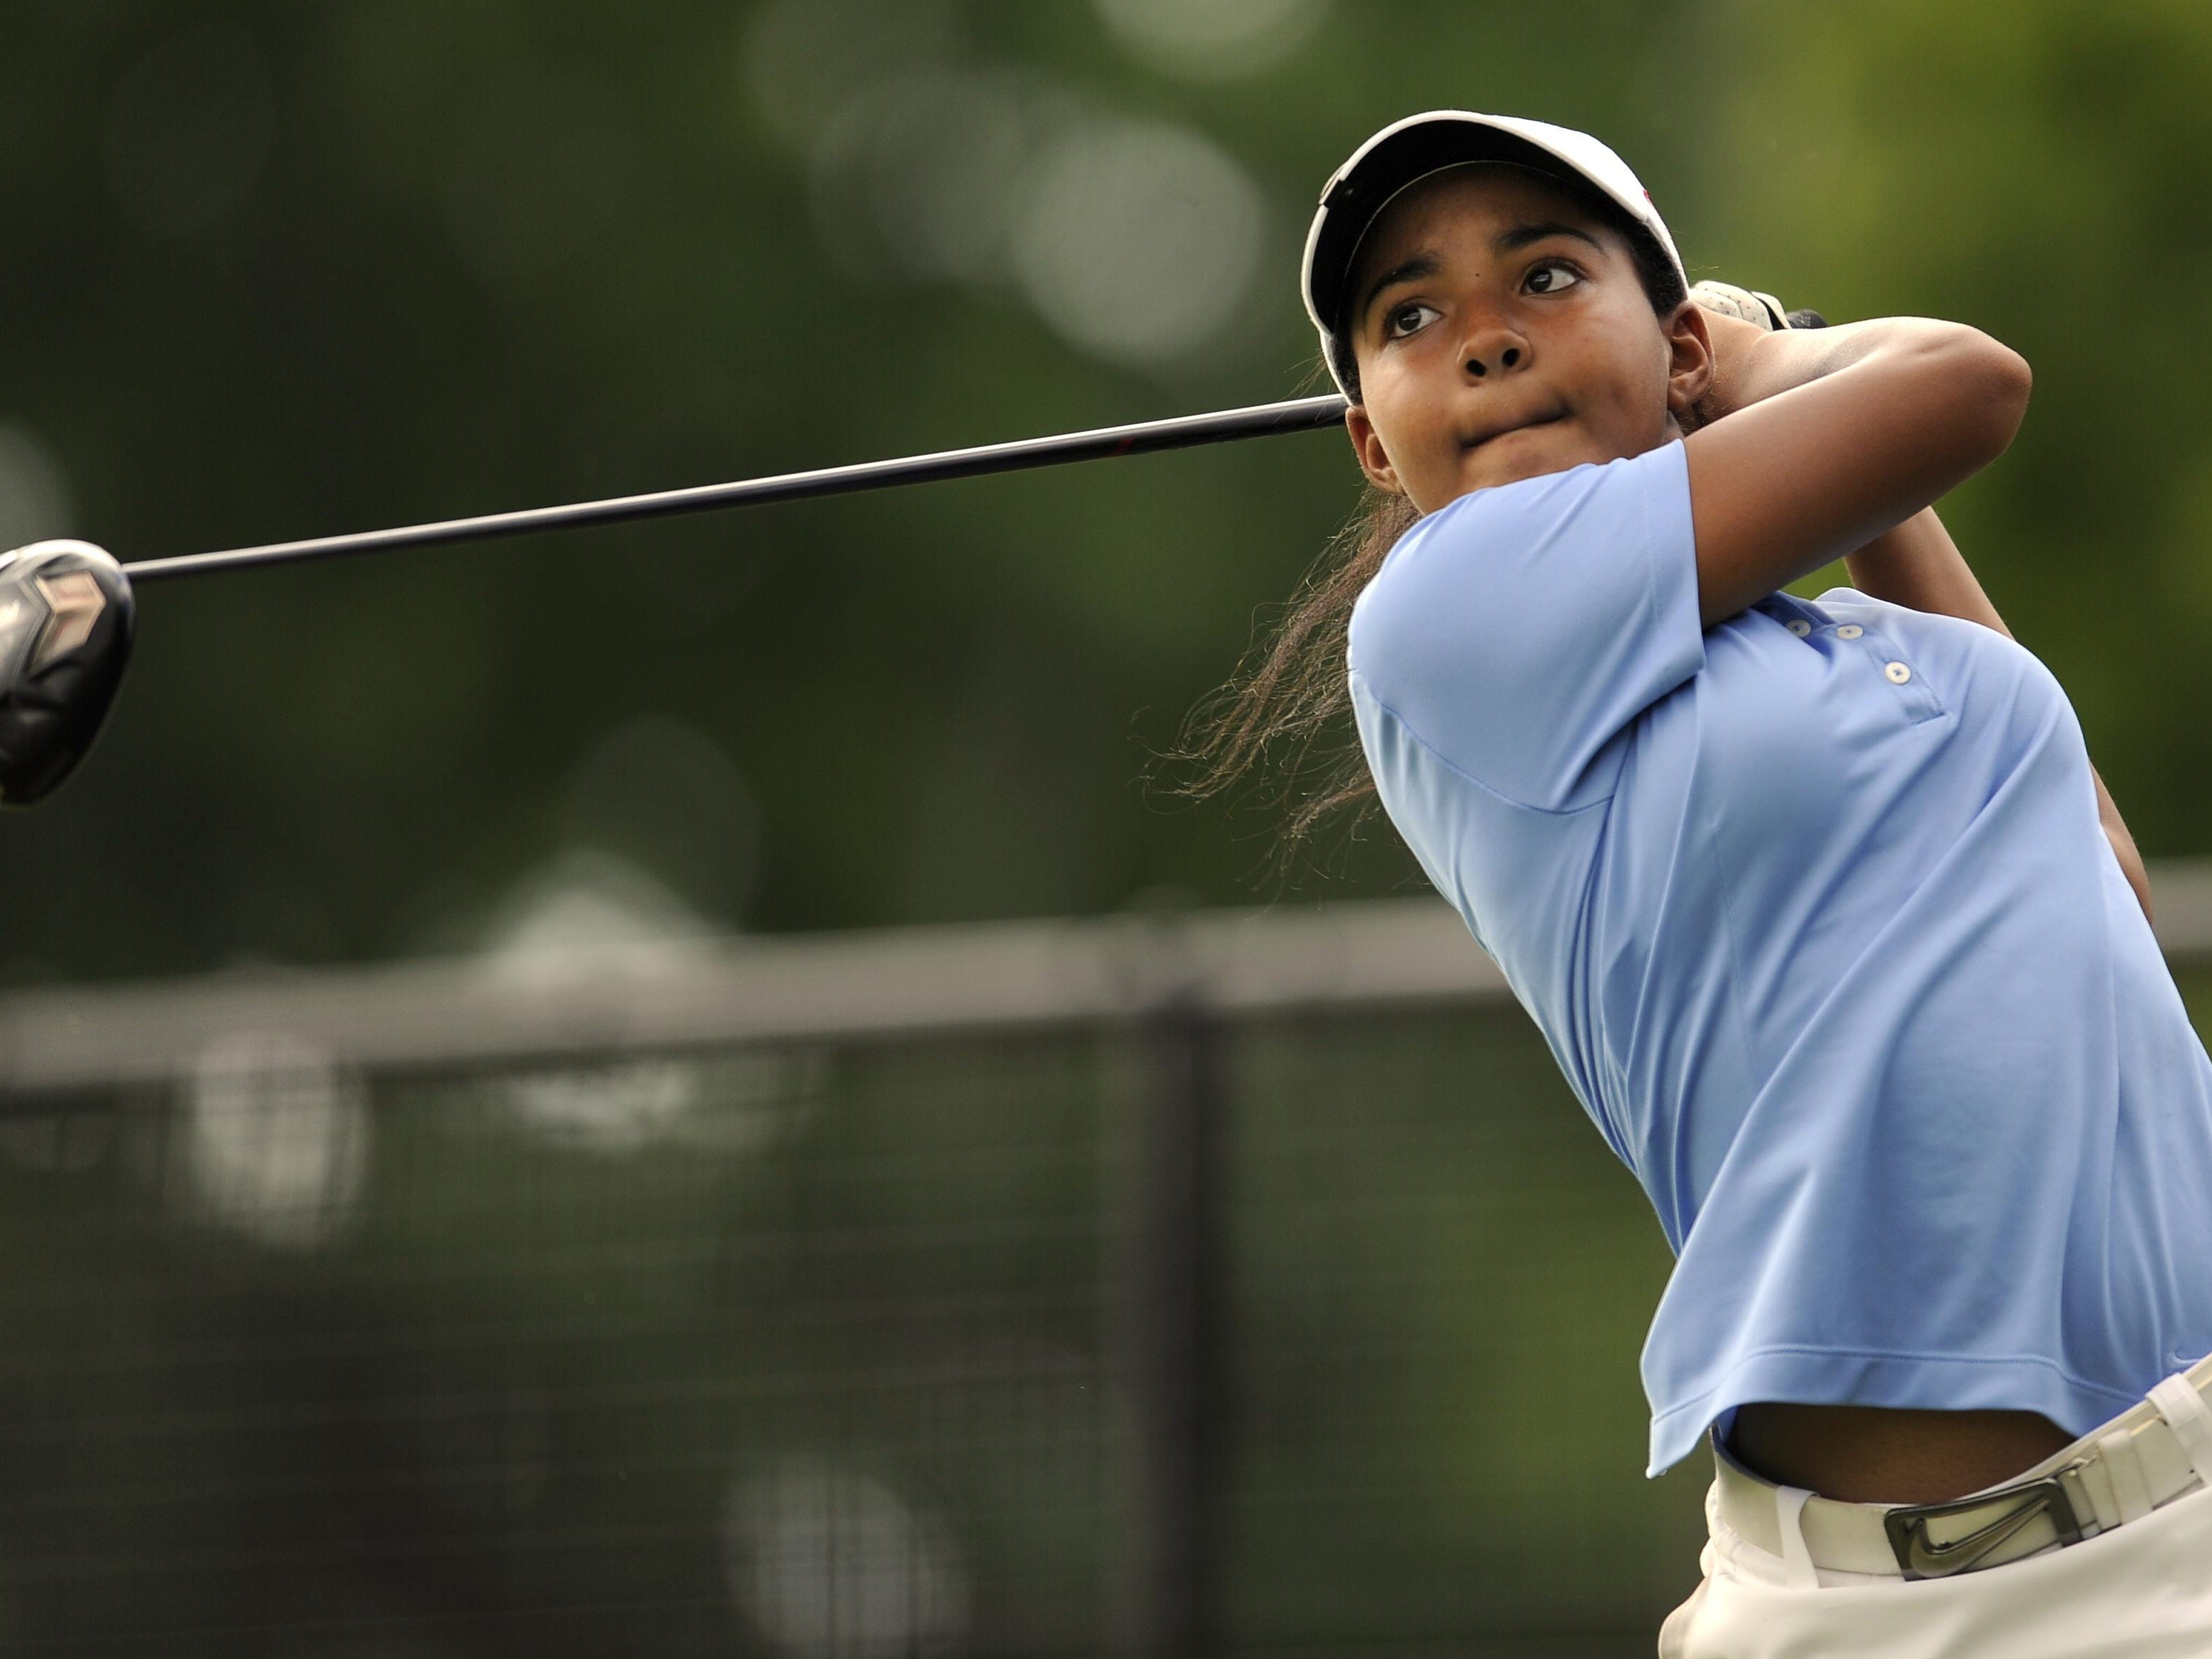 Mariah Smith, of Clarksville High, watches her drive off of the 18th tee during her match in the Schooldays Tournament in Nashville a few years ago. Smith has qualified to compete in the U.S. Girls Junior Championships next week.